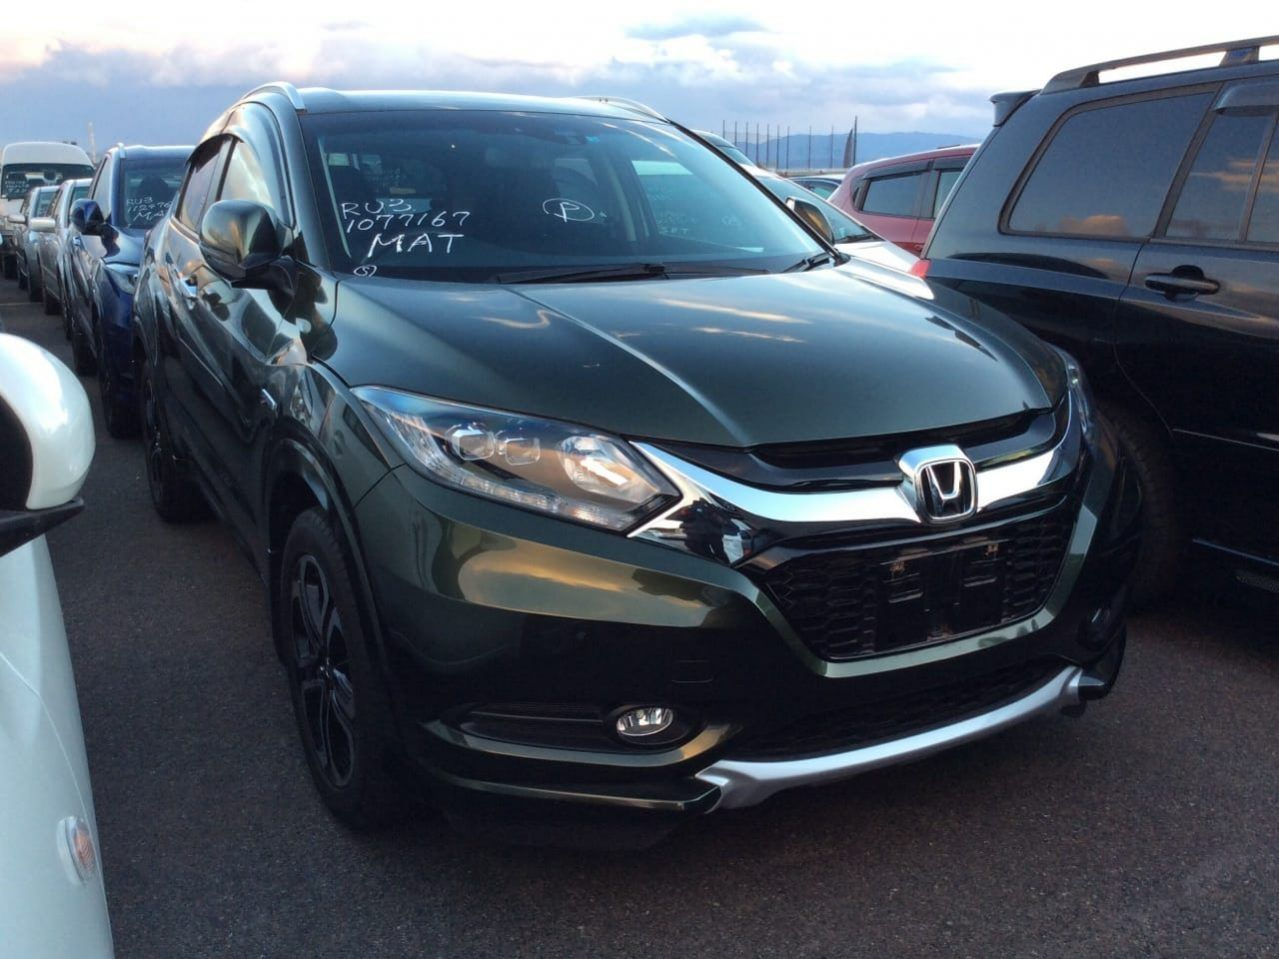 Honda Vezel for sale in Pakistan MILEAGE 19,000Km YEAR